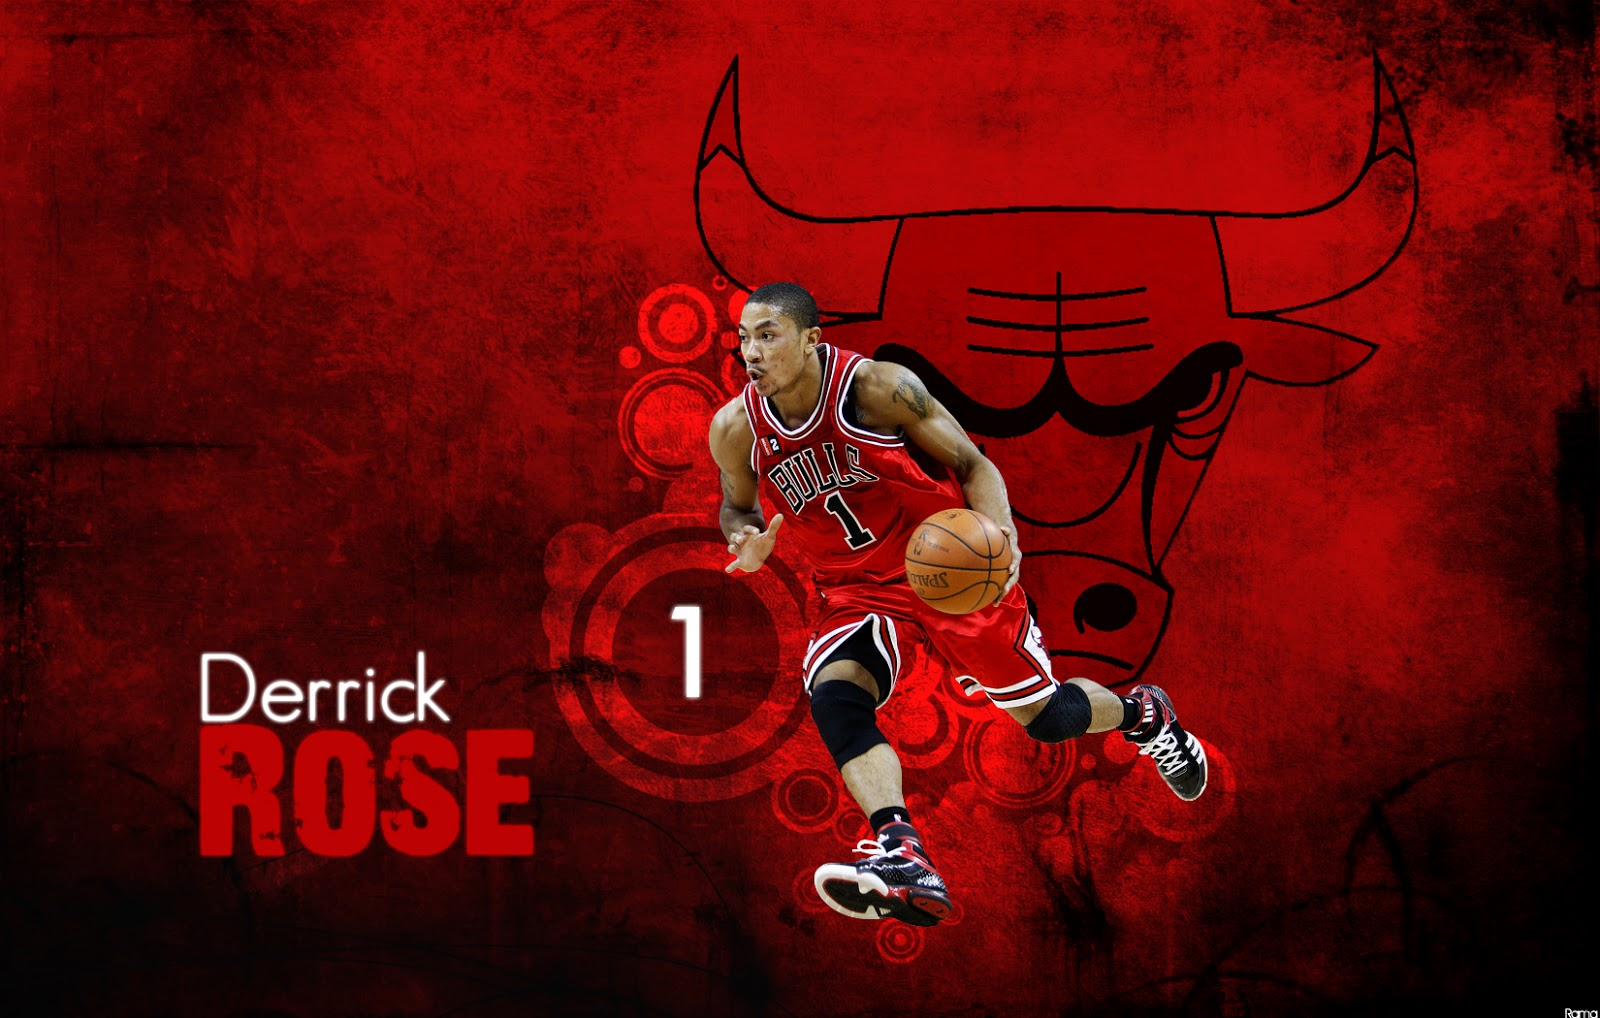 Derrick rose hd wallpapers latest hd wallpapers voltagebd Image collections